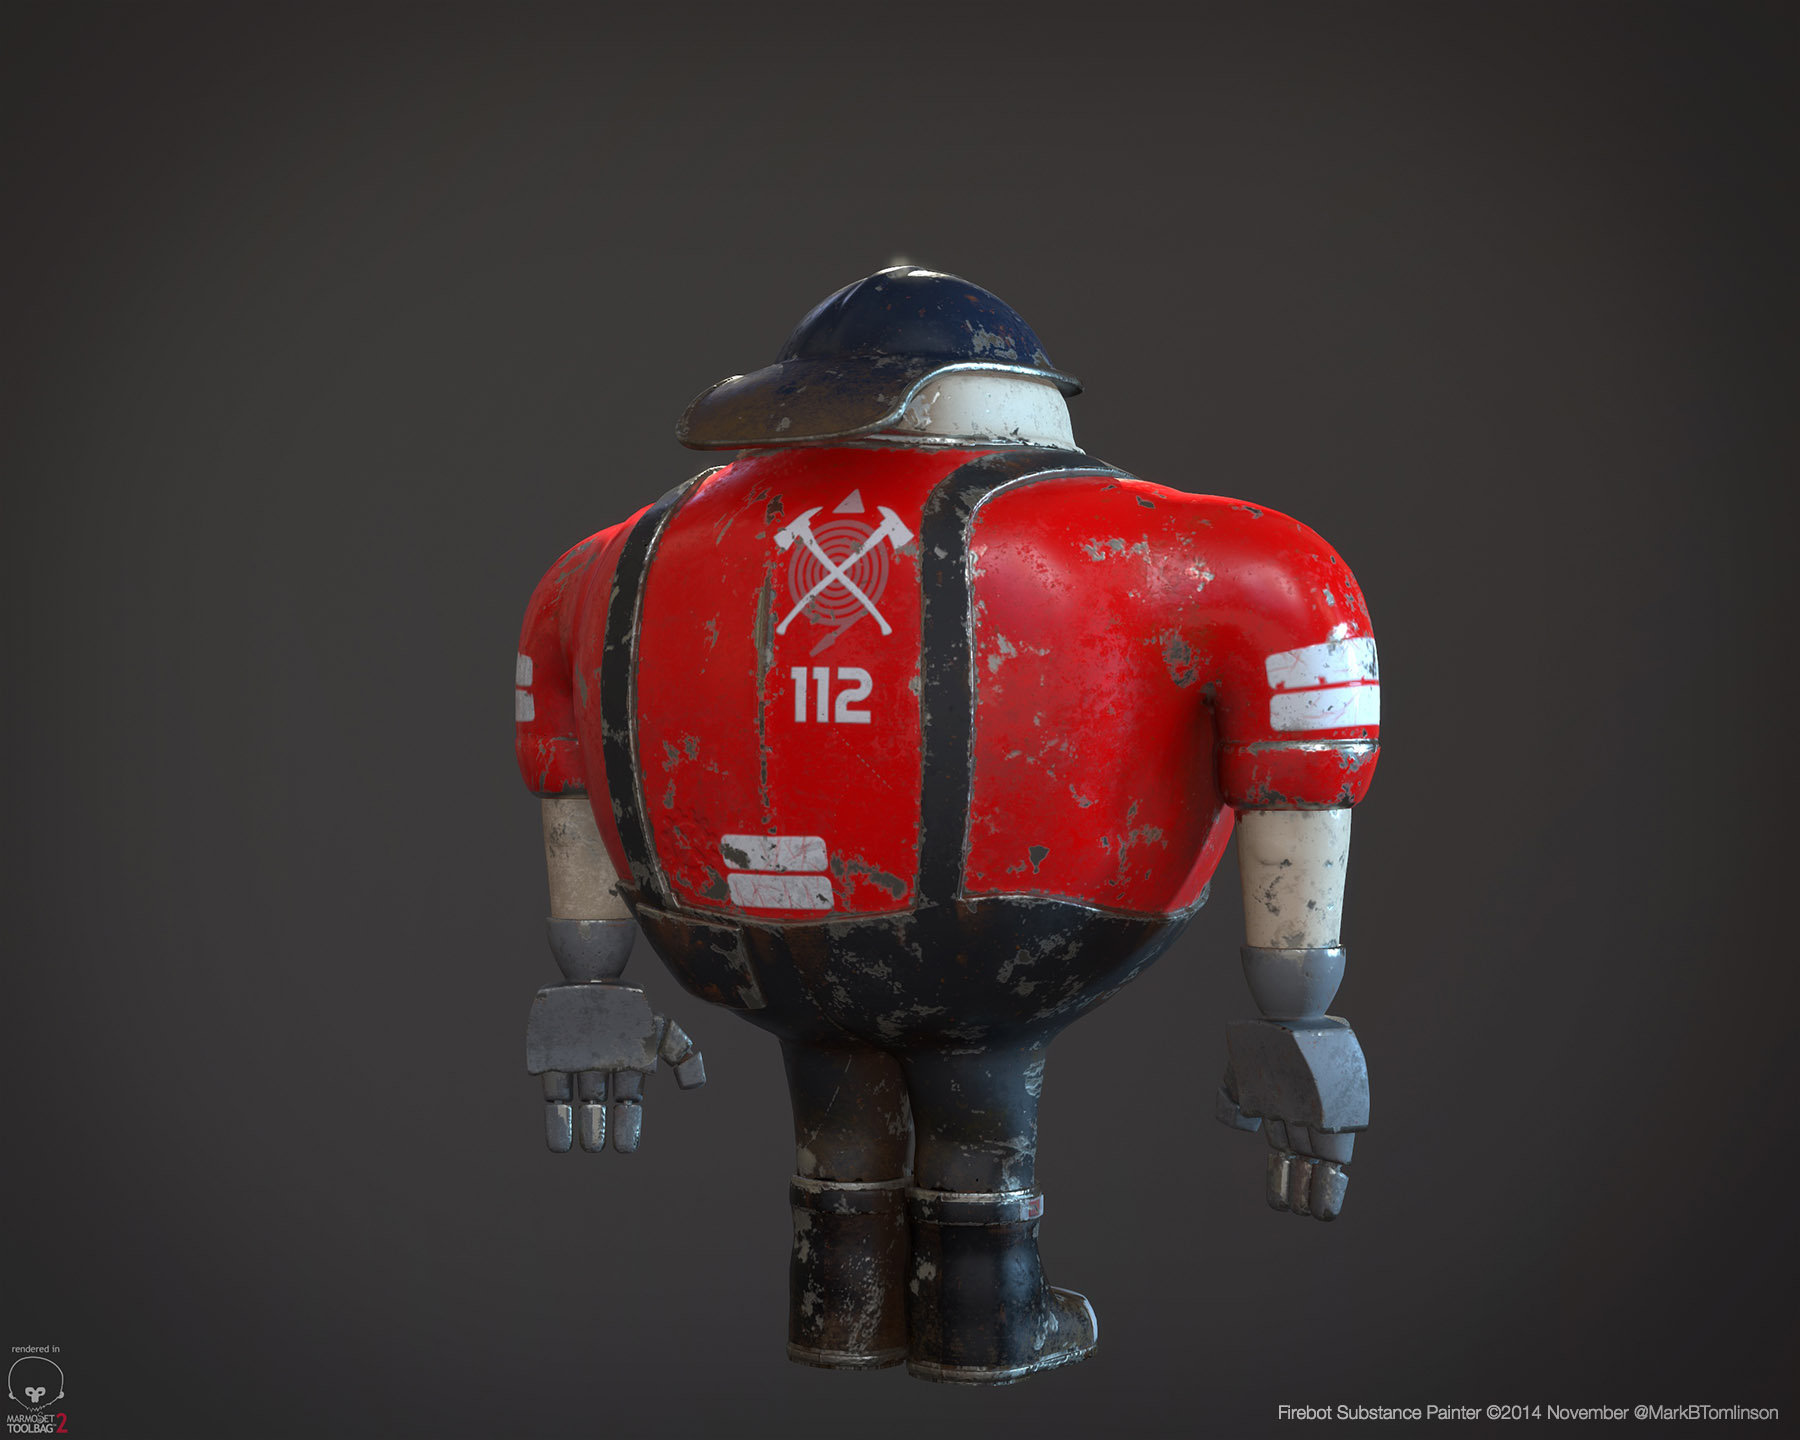 Mark b tomlinson firebot substance painter web 06